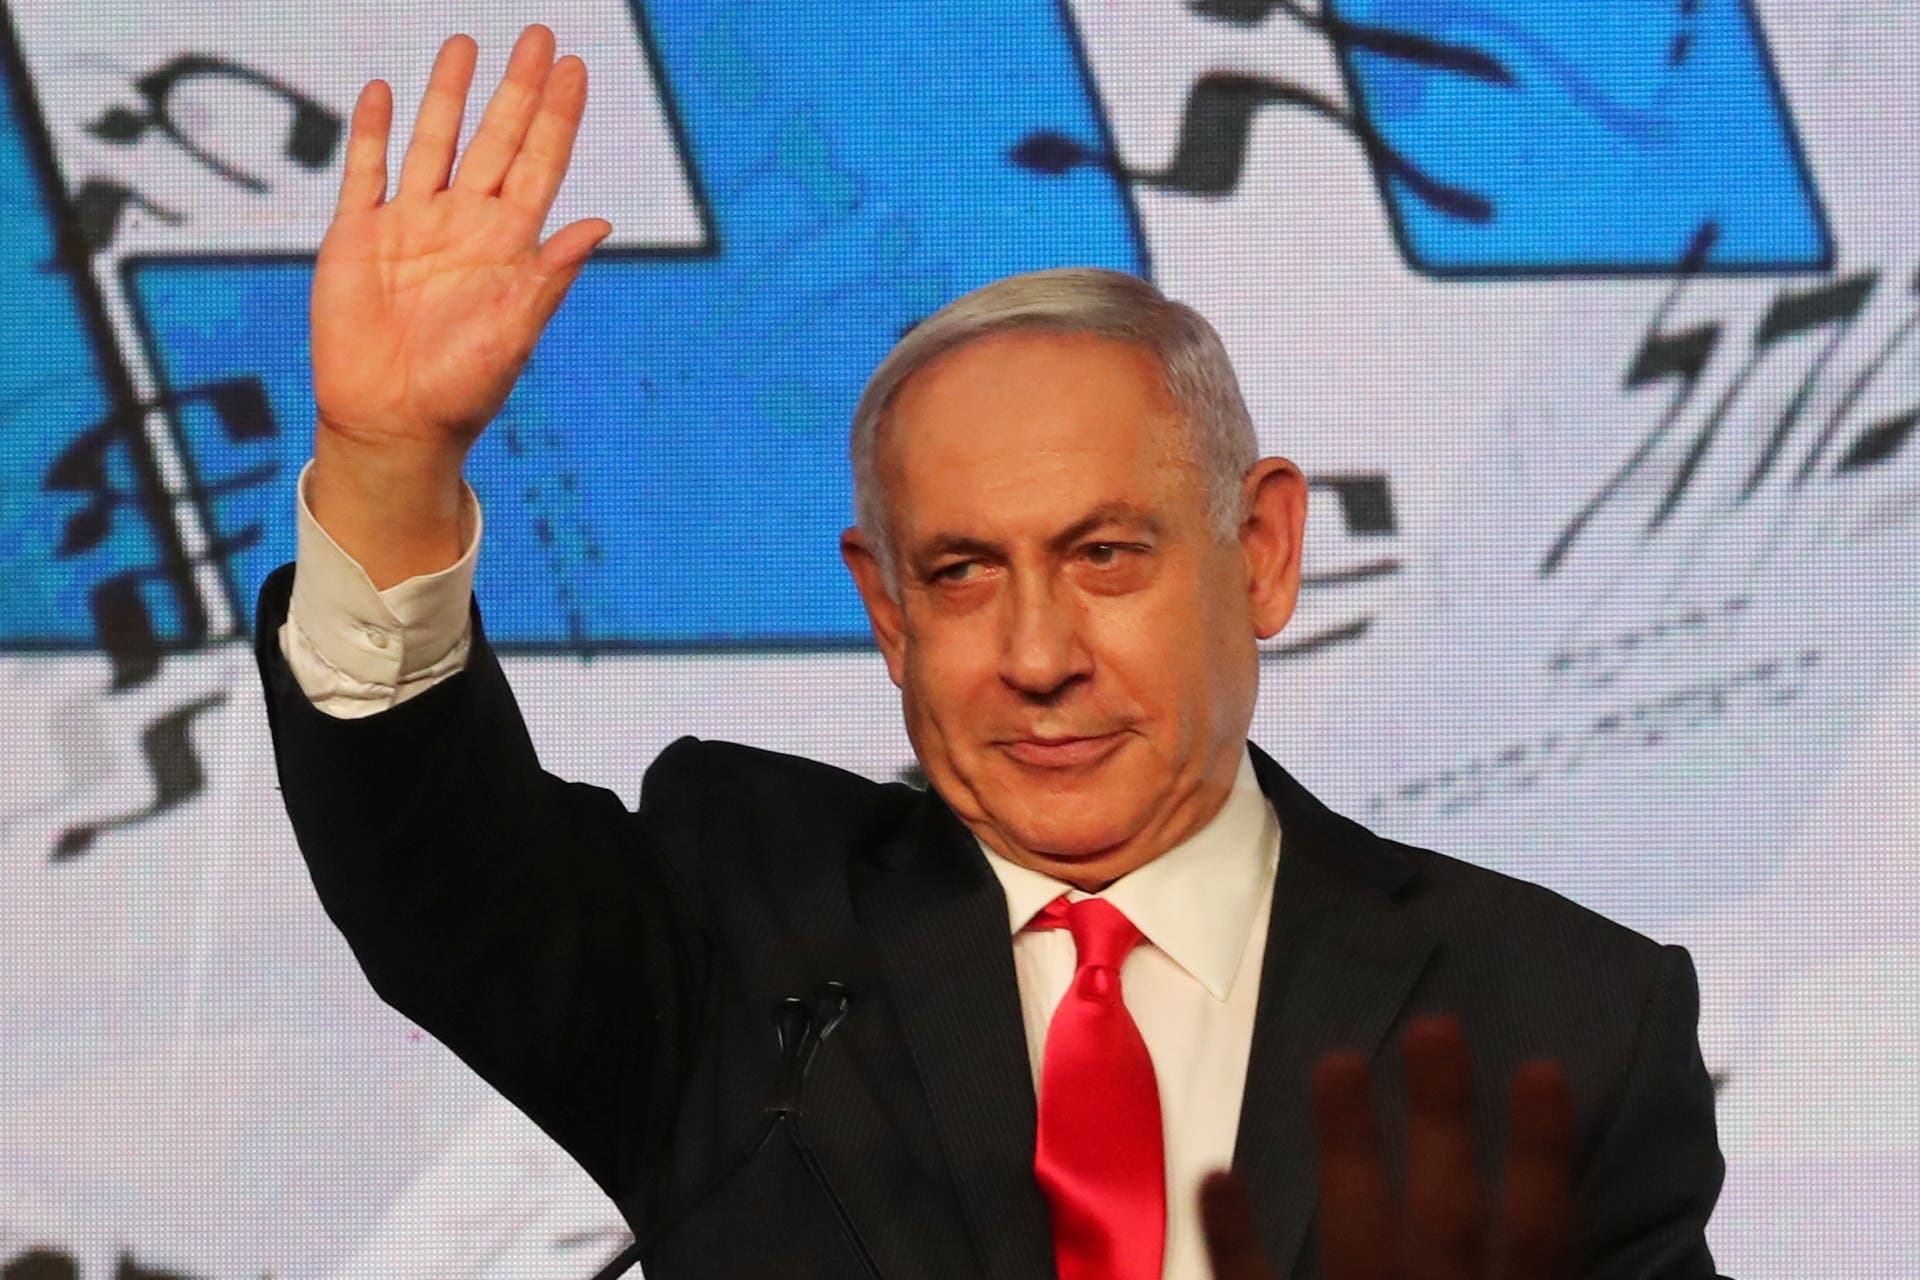 Israeli Prime Minister Benjamin Netanyahu gestures as he delivers a speech to supporters following the announcement of exit polls in Israel's general election at his Likud party headquarters in Jerusalem March 24, 2021. (Reuters)